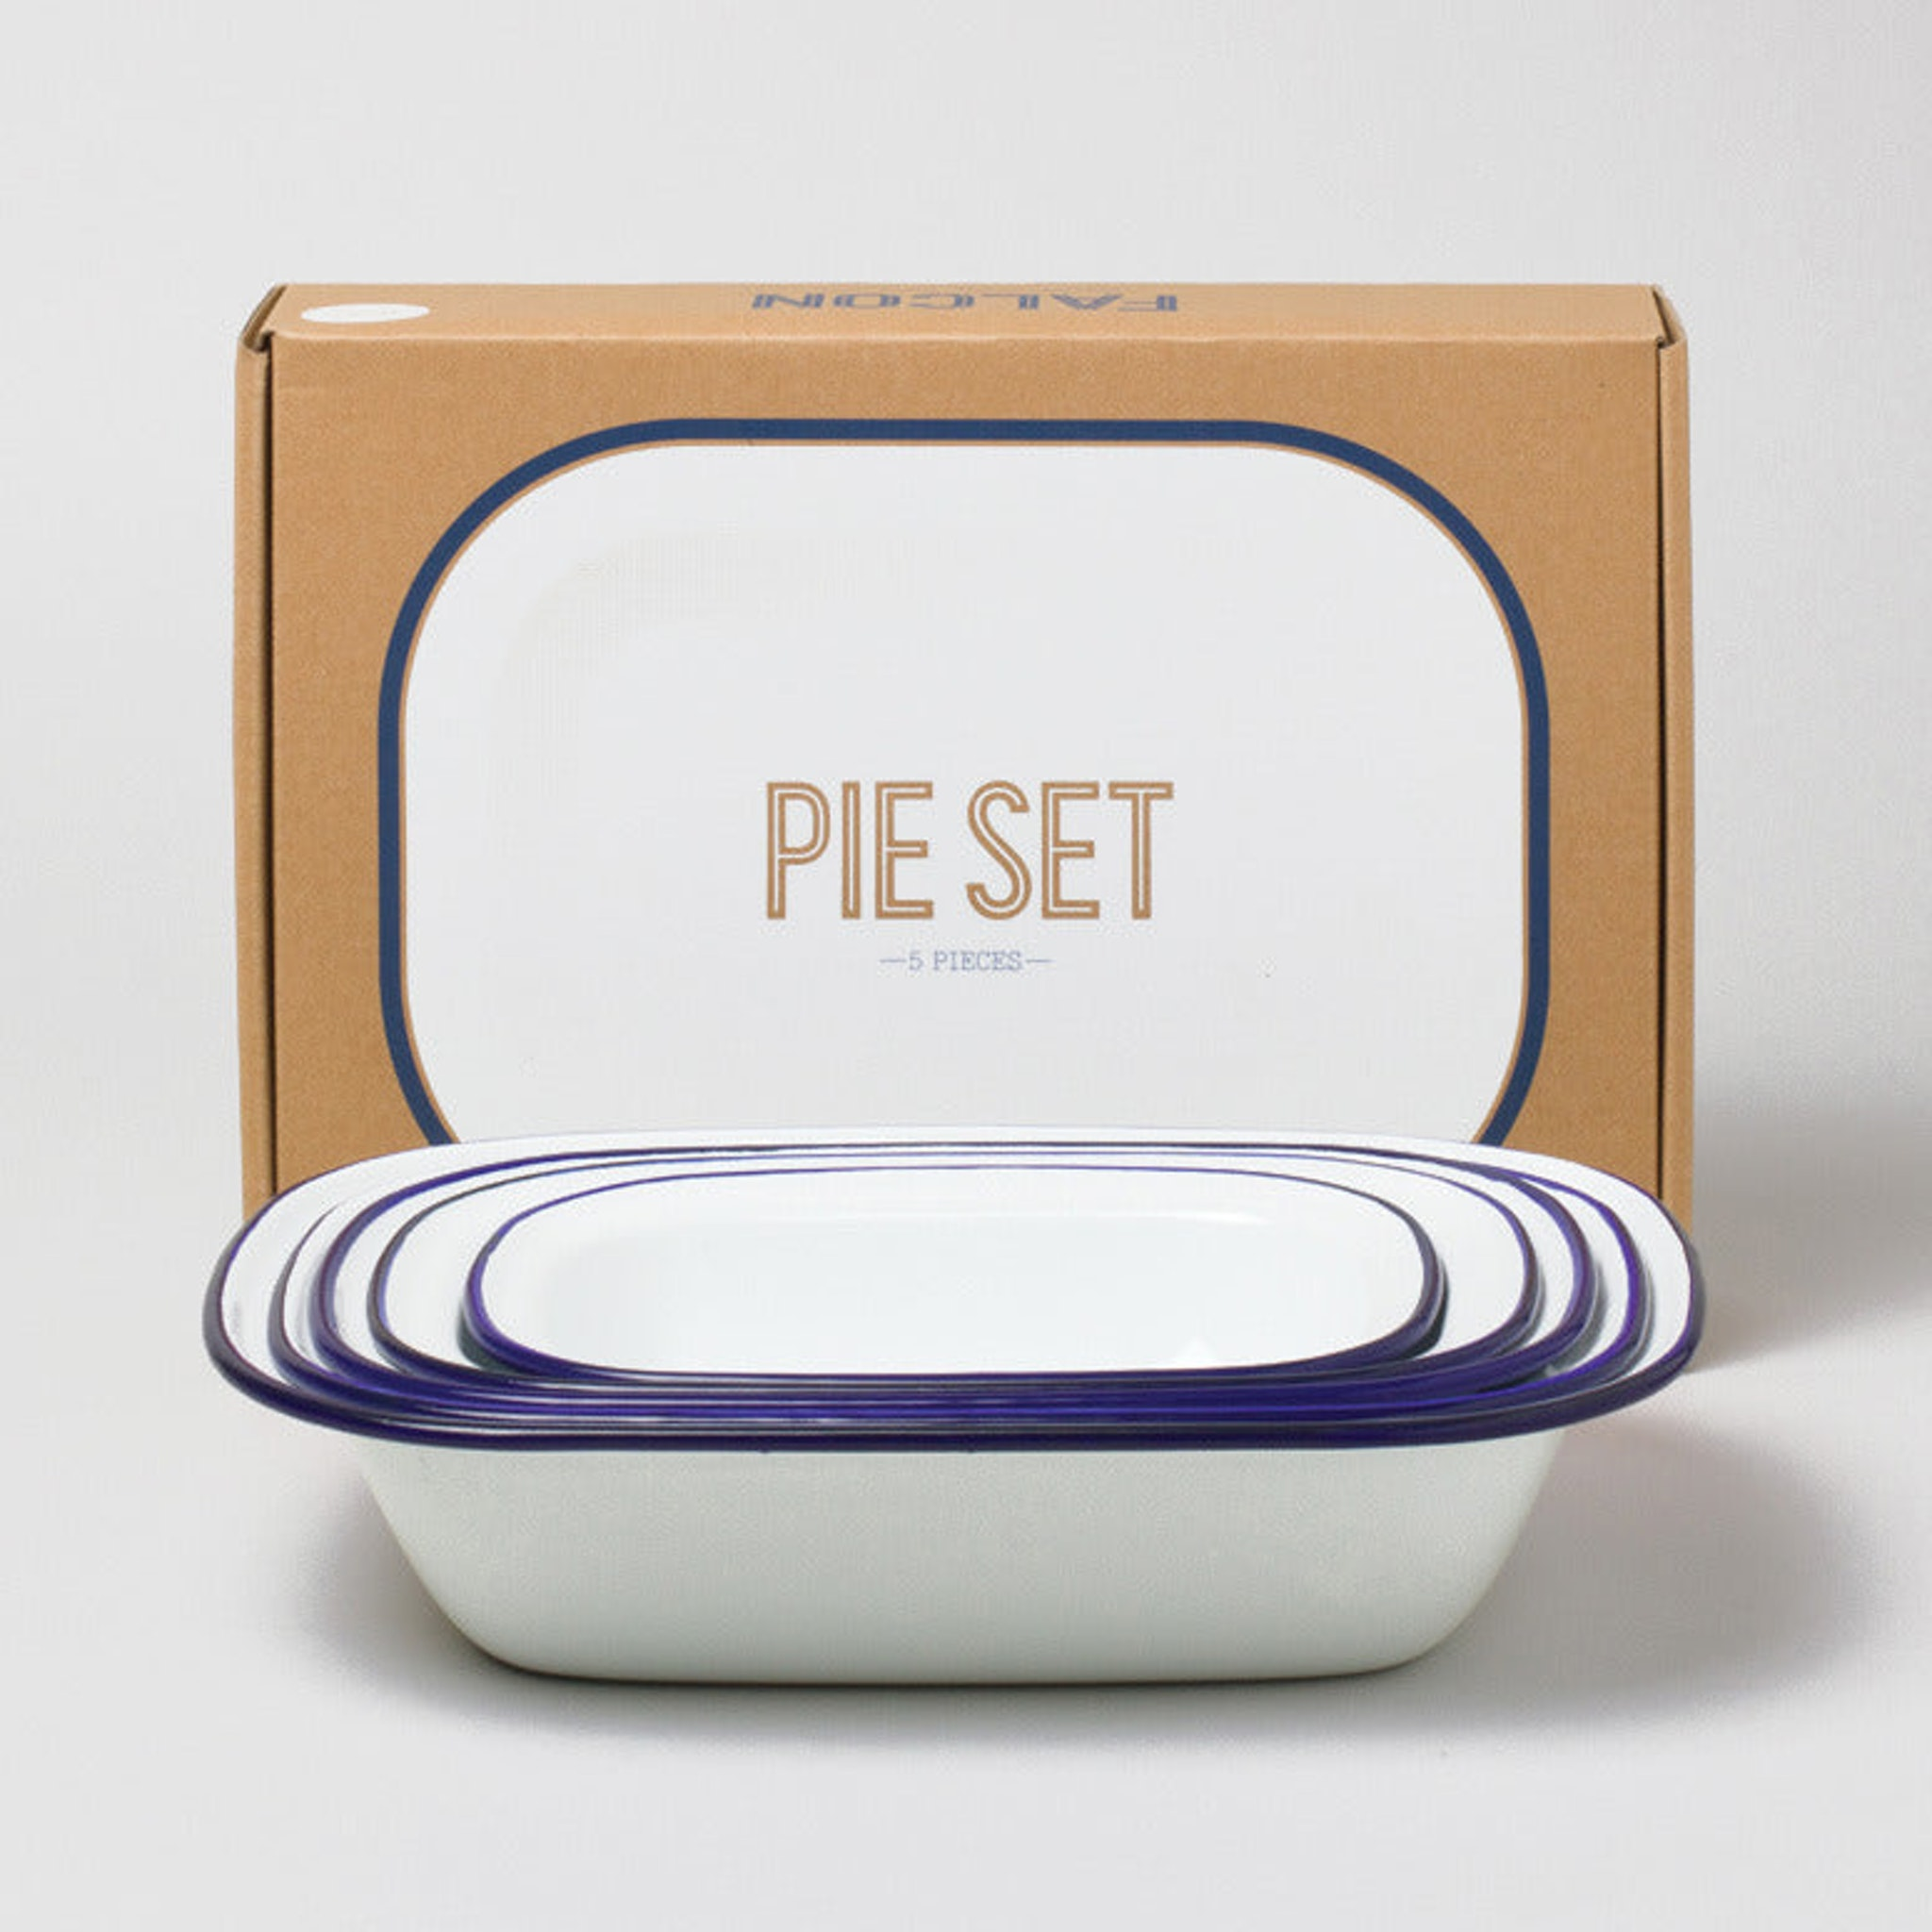 Pie Set by Falcon Enamelware